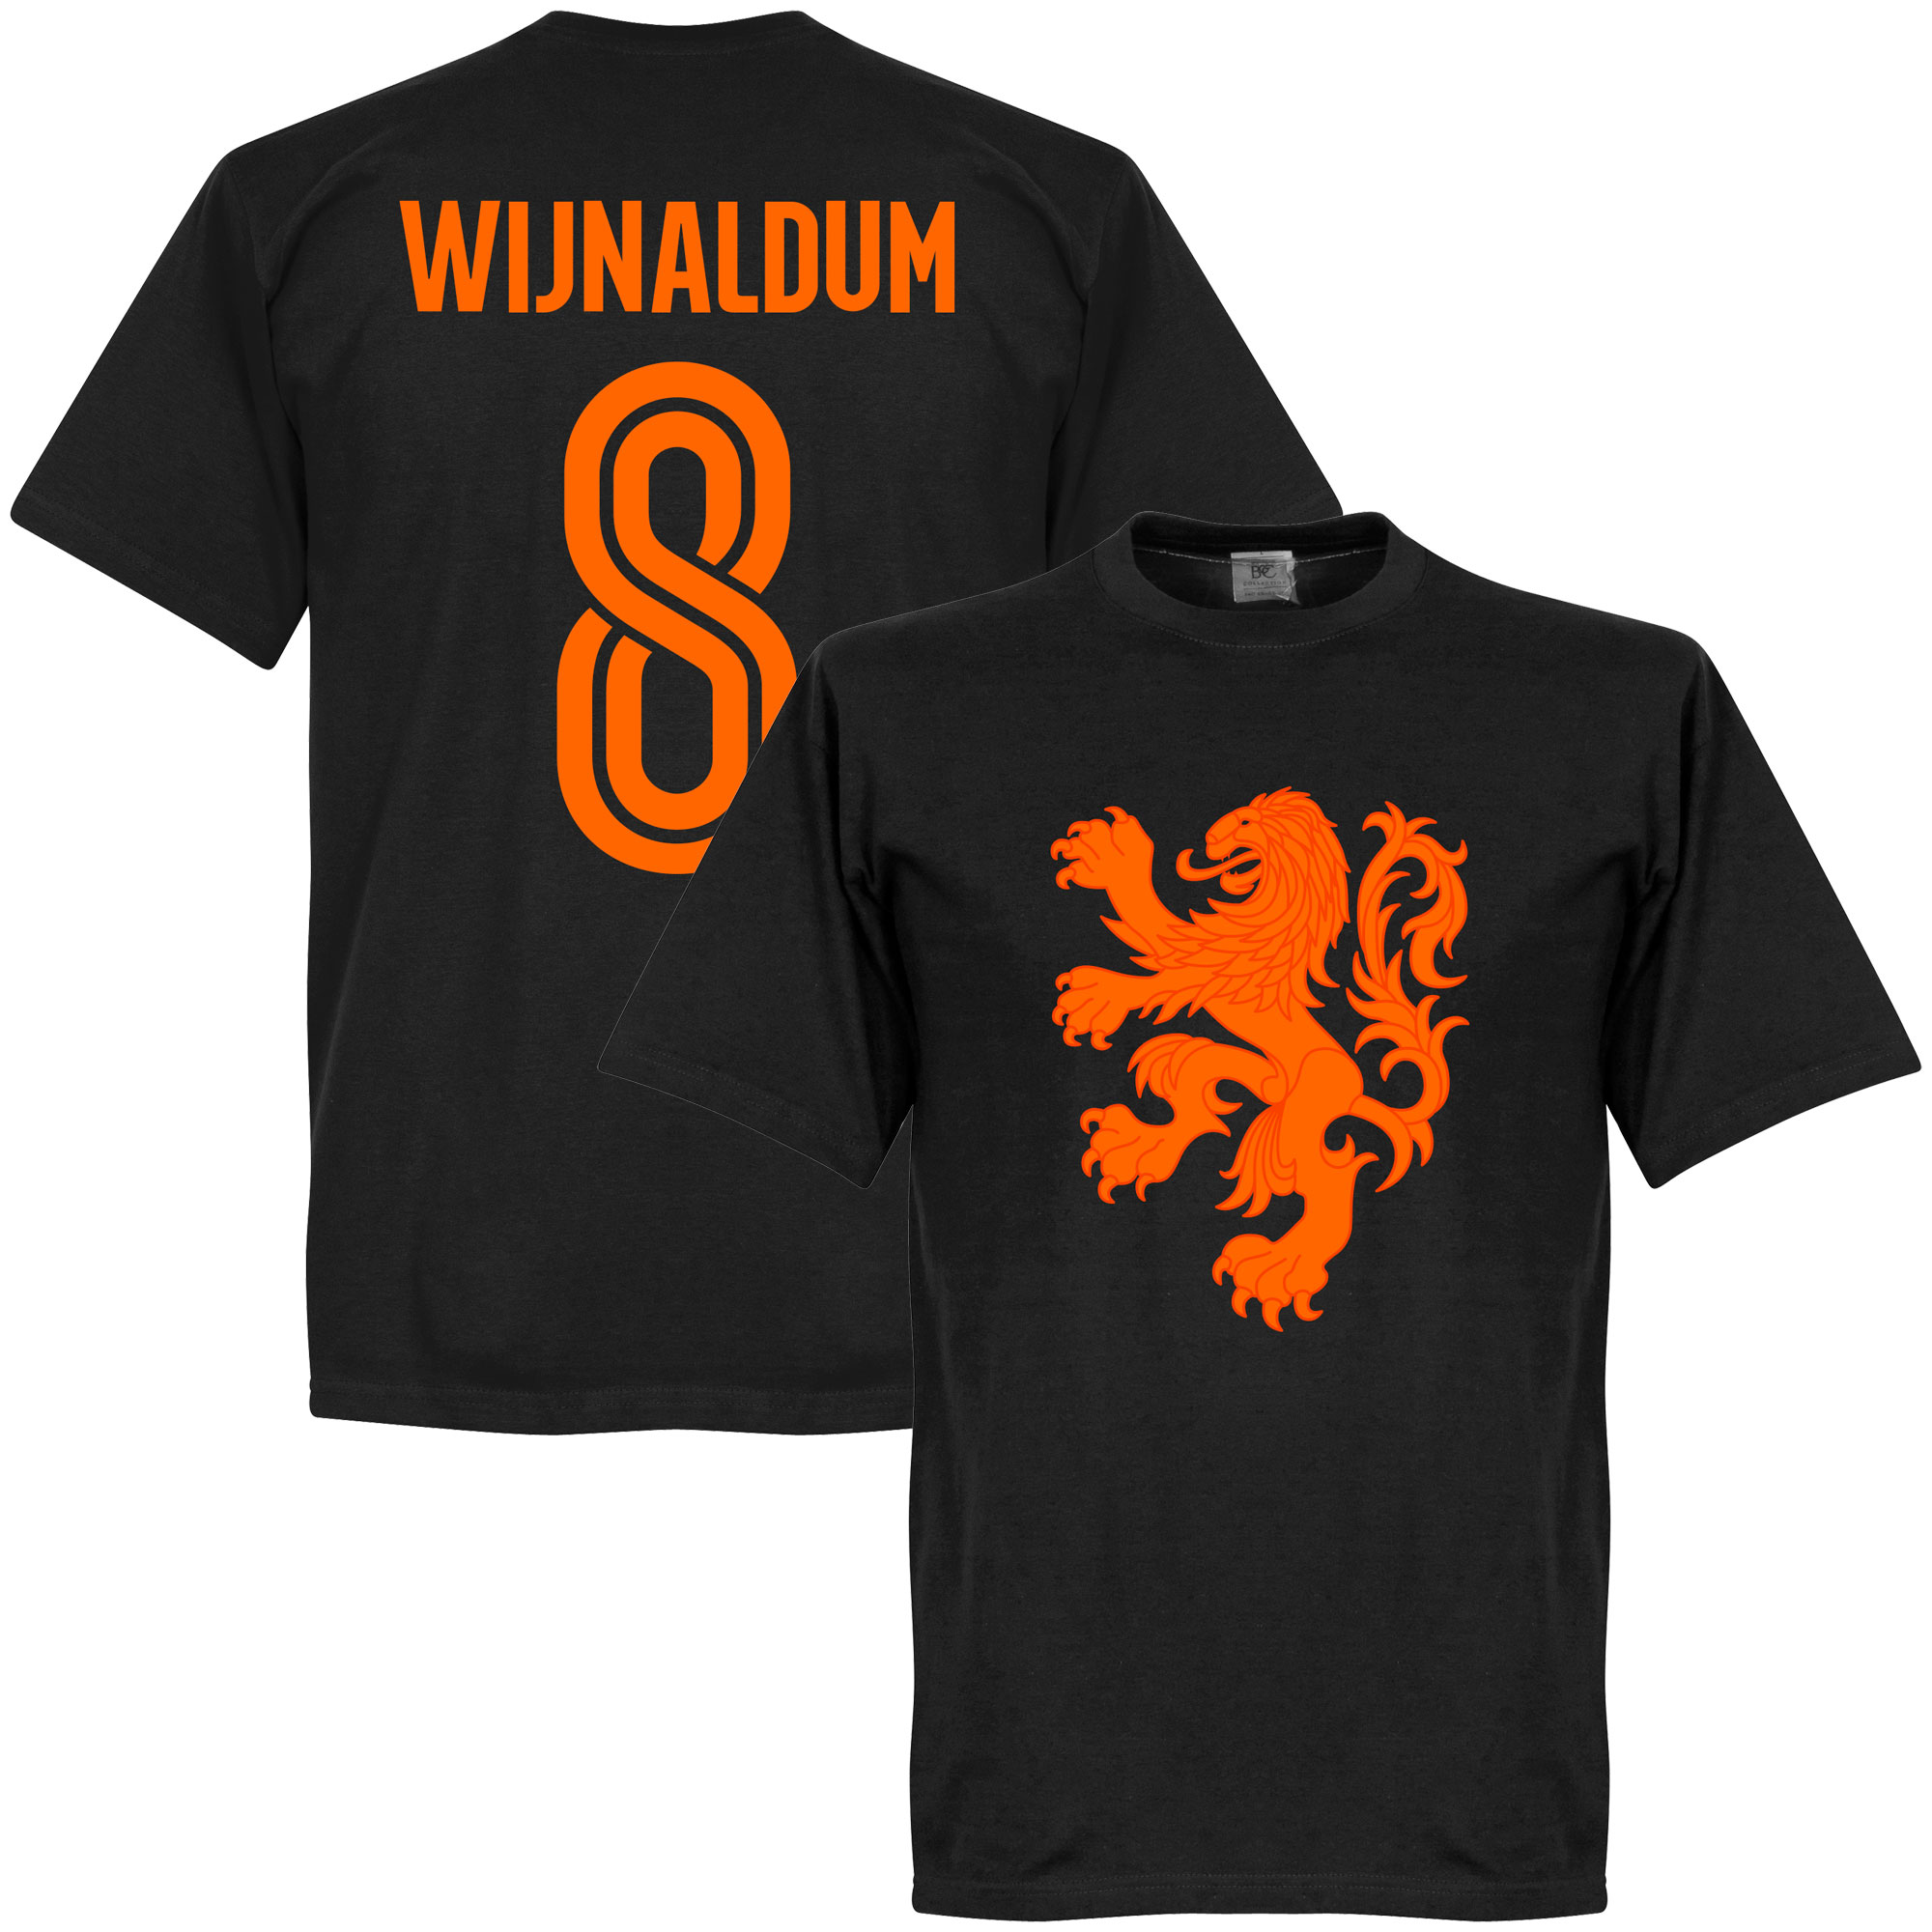 Holland Wijnaldum Lion Tee - Black - XXXXXL